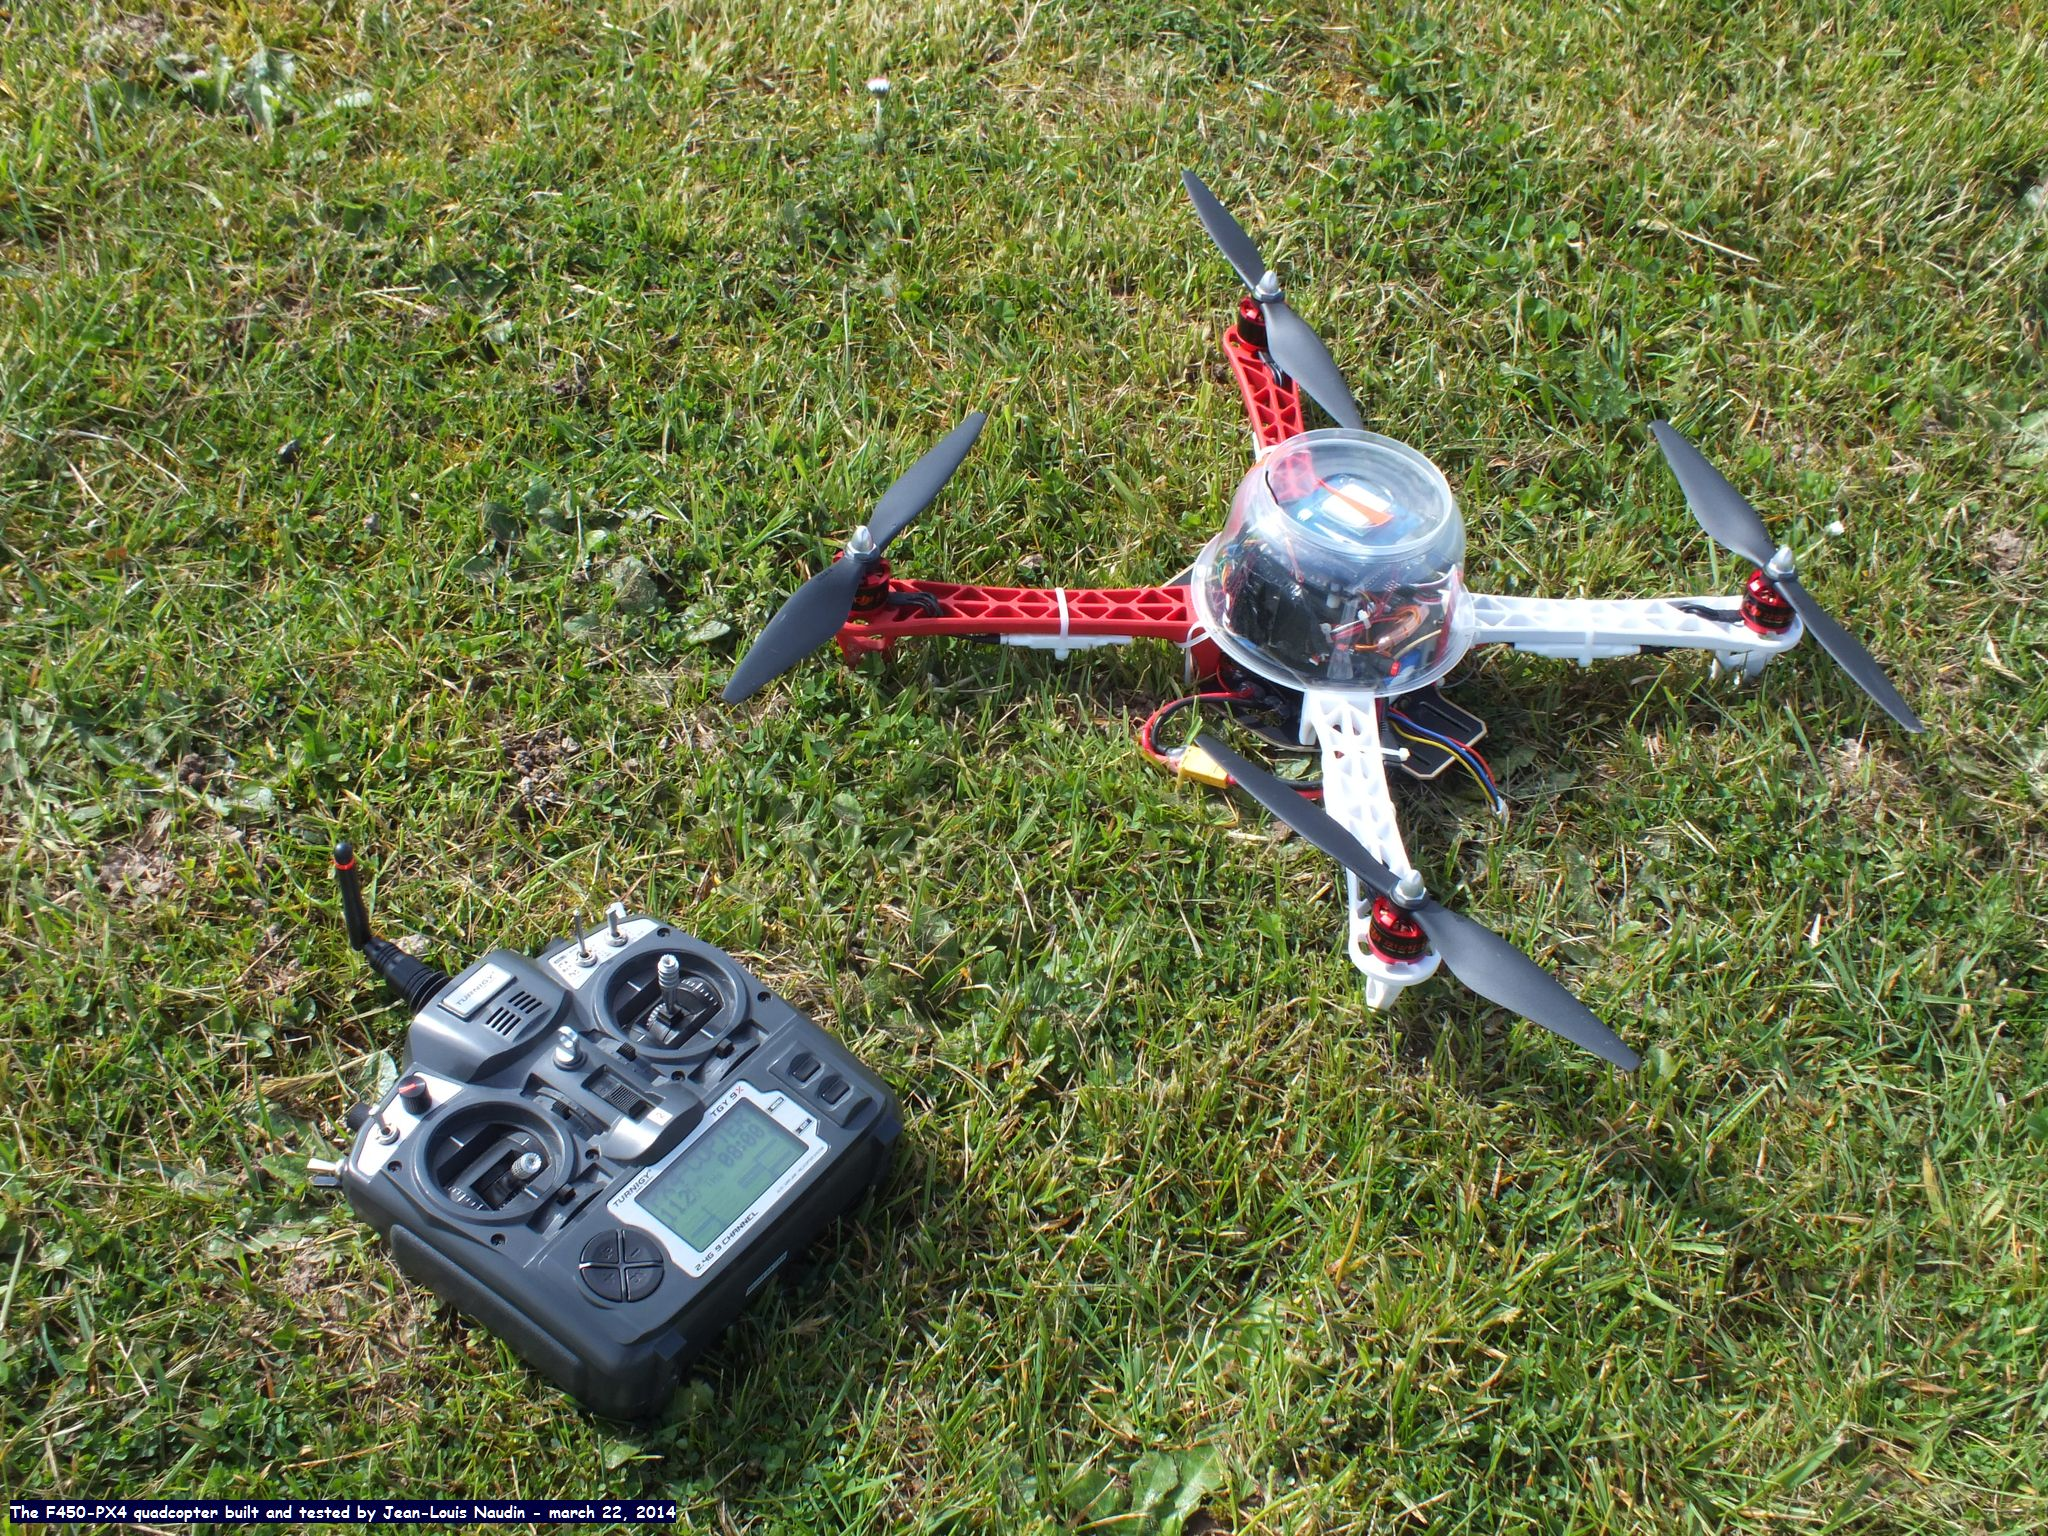 PX4 F450 quadcopter built and tested in flight · jlnaudin/x